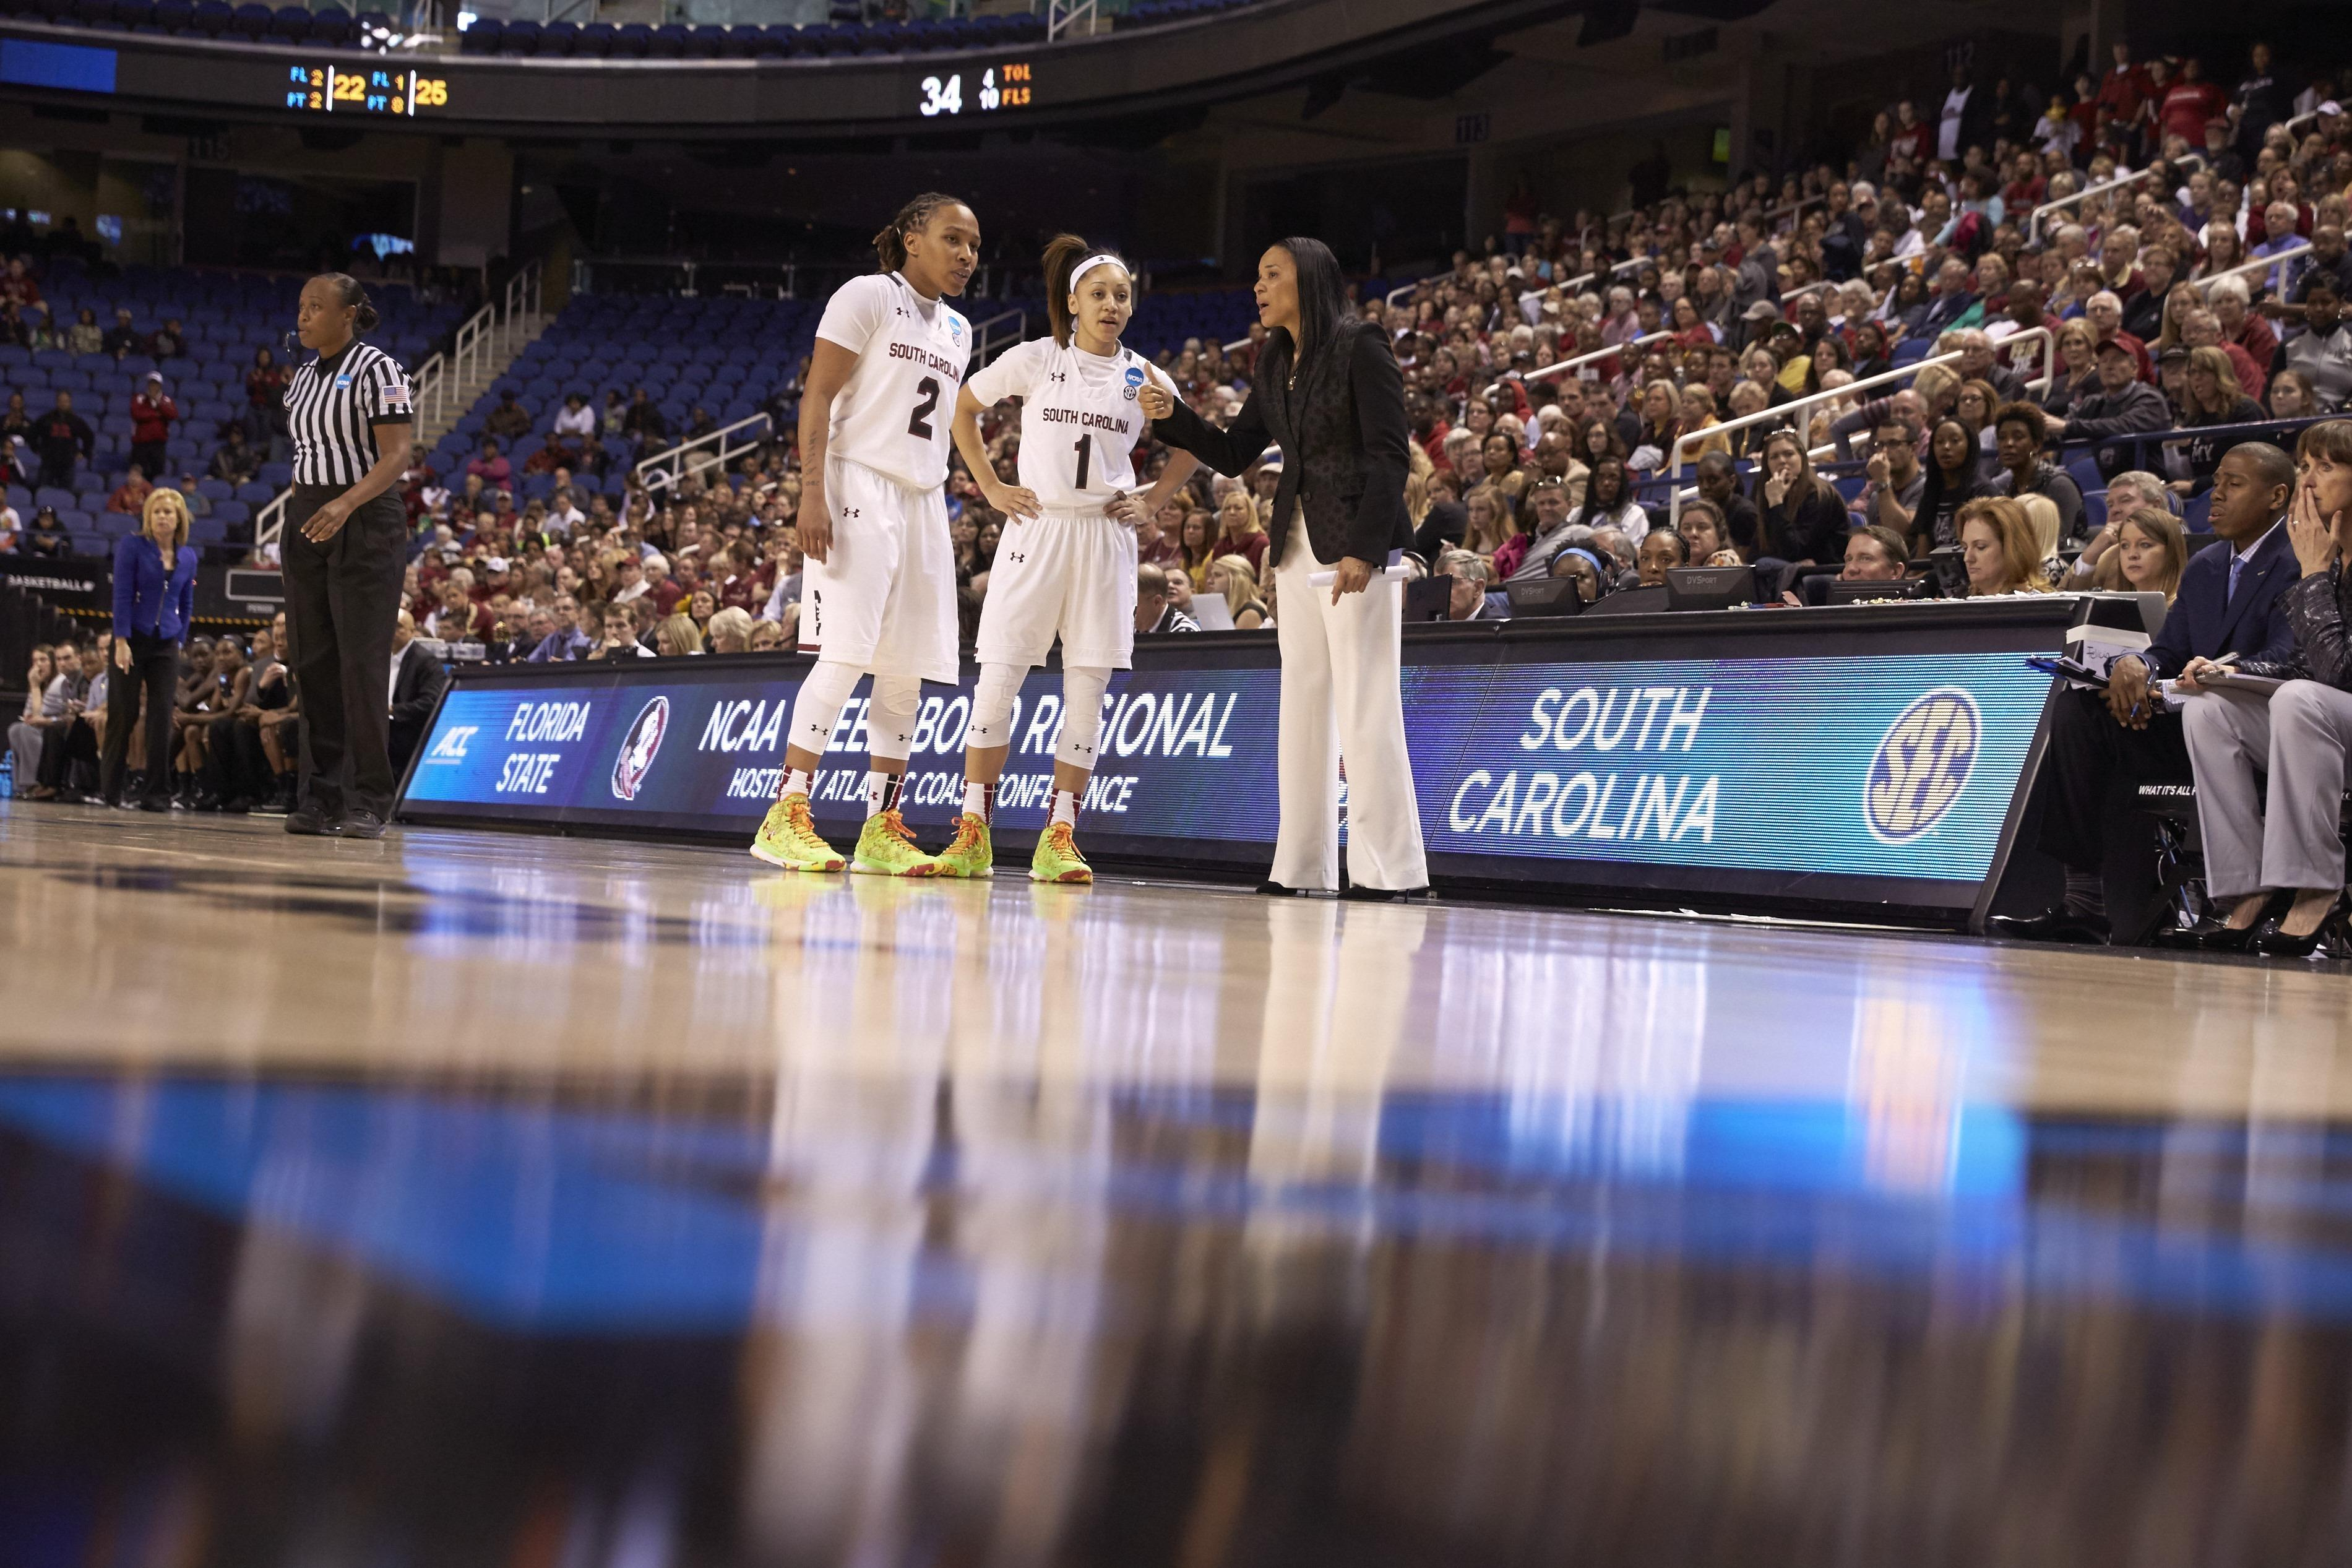 University of South Carolina vs Florida State University, 2015 NCAA Women's Greensboro Regional Finals